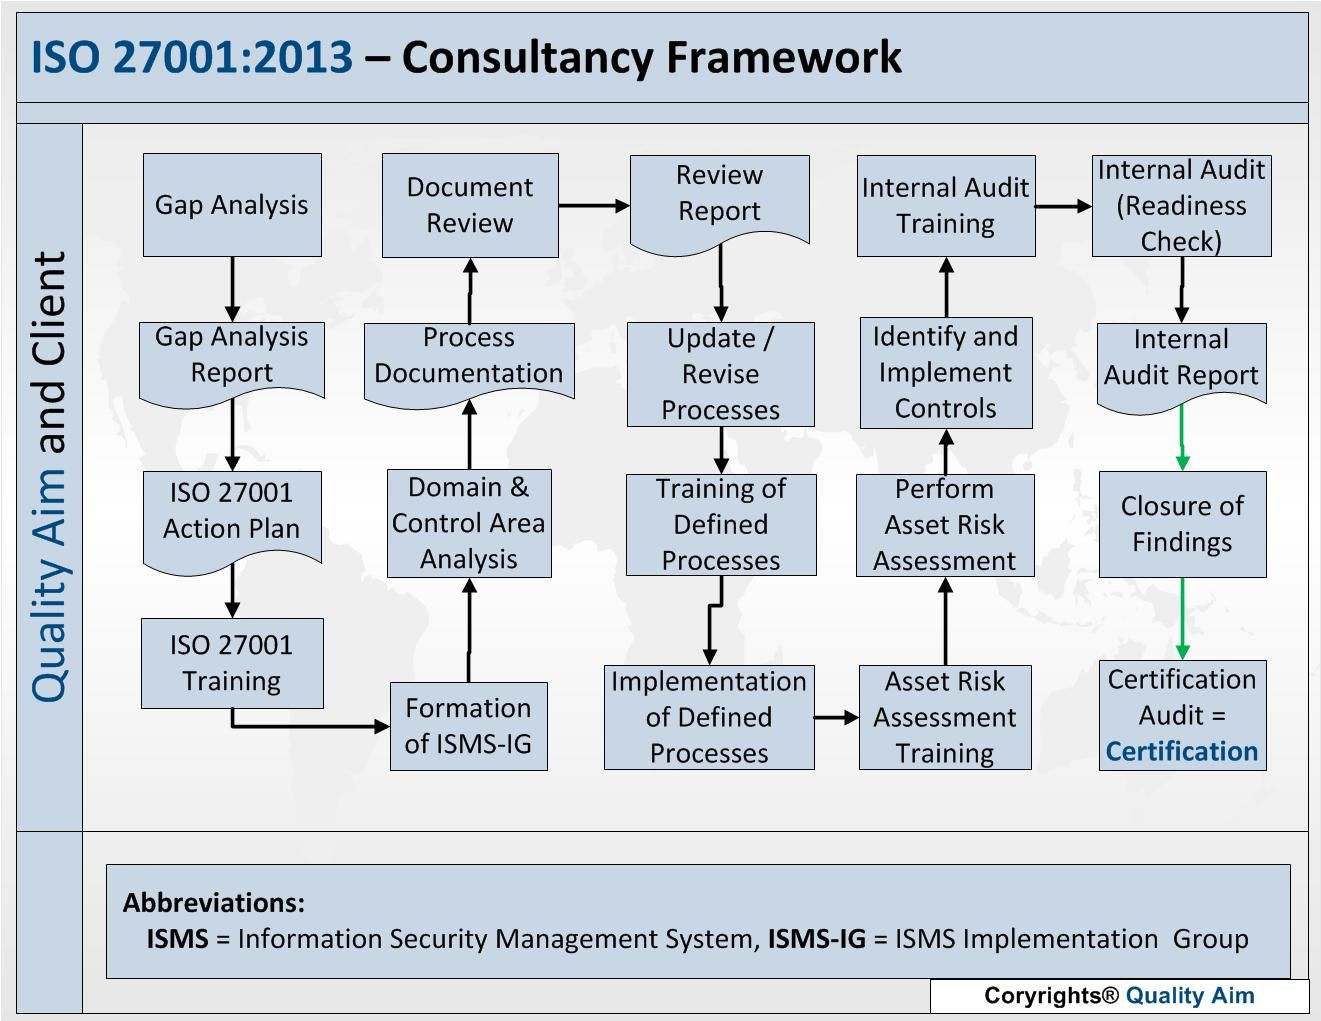 Iso27001 isms implementation framework cobit pinterest 19 best images about iso 27001 board on 28 images 86 best kaizen images on 19 best images about iso 27001 board on 19 best images about iso 27001 fandeluxe Choice Image